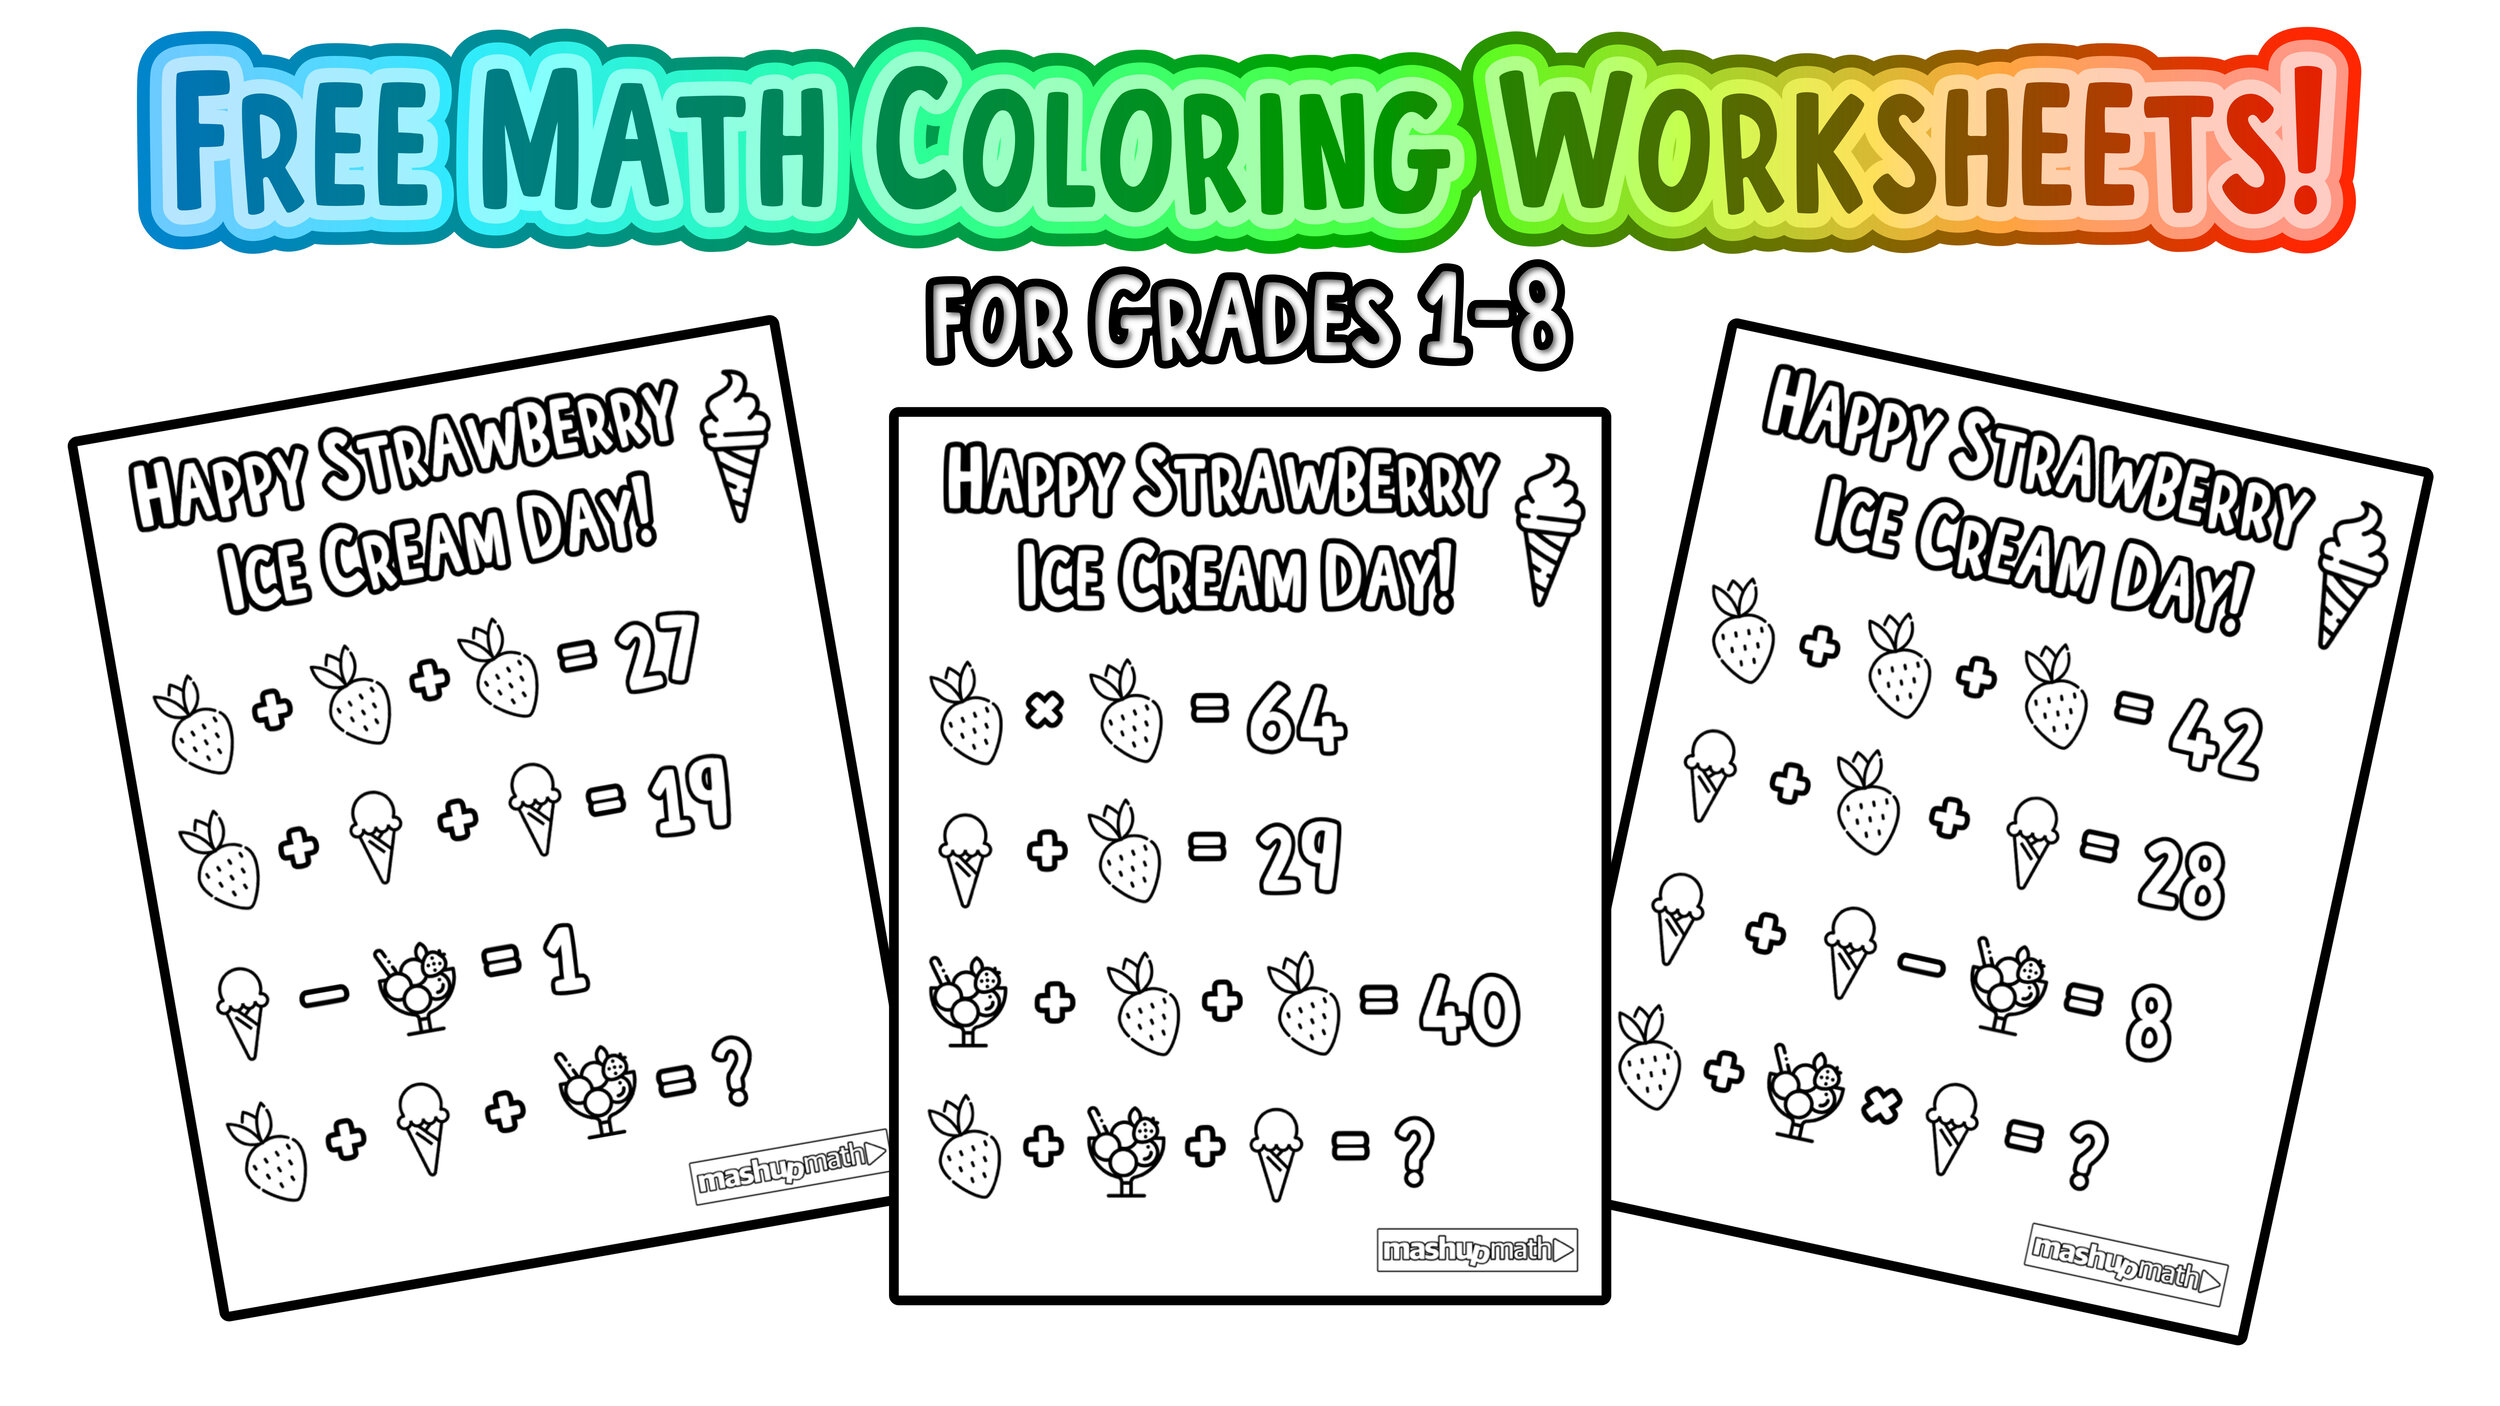 medium resolution of Free Math Coloring Pages for Grades 1-8 — Mashup Math